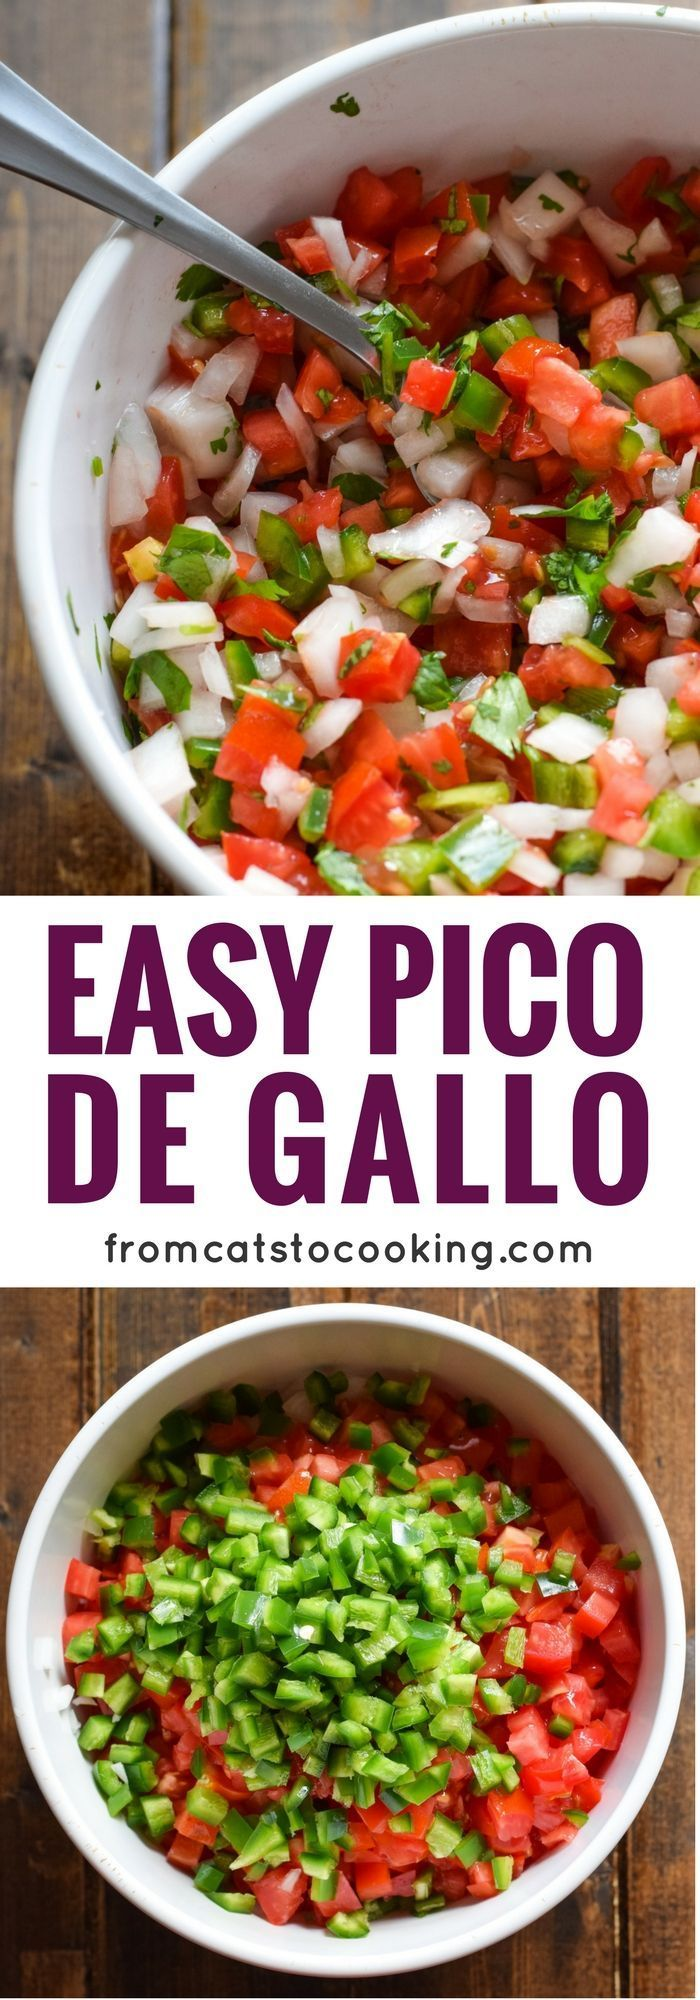 Marinated Flank Steak Tacos with Pico de Gallo #flanksteaktacos This fresh pico de gallo salsa is made with onions, jalapeños, roma tomatoes, chopped cilantro and freshly squeezed lime juice for some added brightness. Perfect as a topping on your favorite tacos or to eat as a snack with some tortilla chips!(gluten free, dairy free, paleo, vegetarian, vegan) #flanksteaktacos